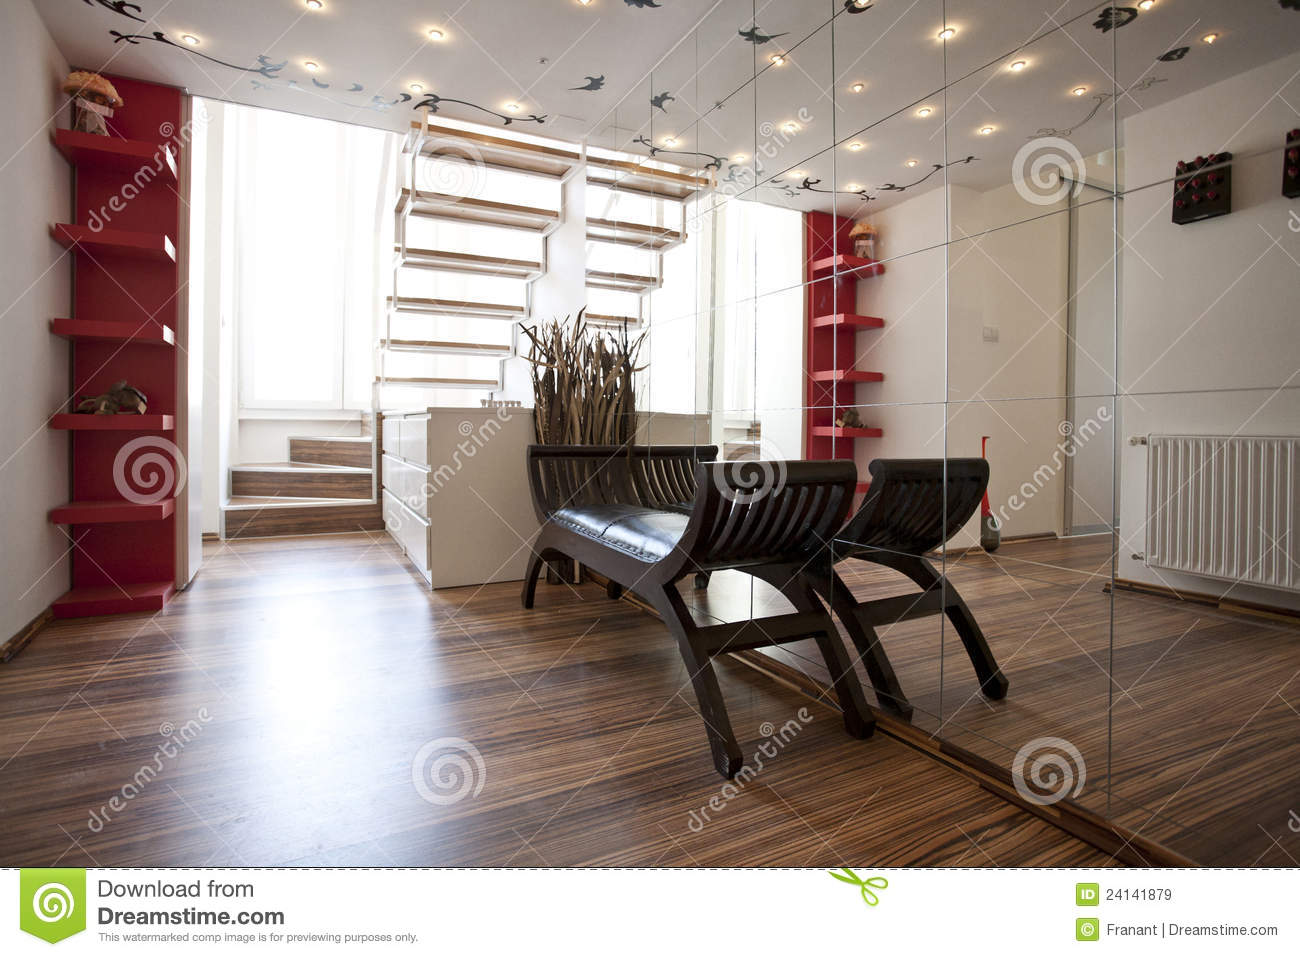 Home lobby interior design royalty free stock images image 24141879 Free interior design